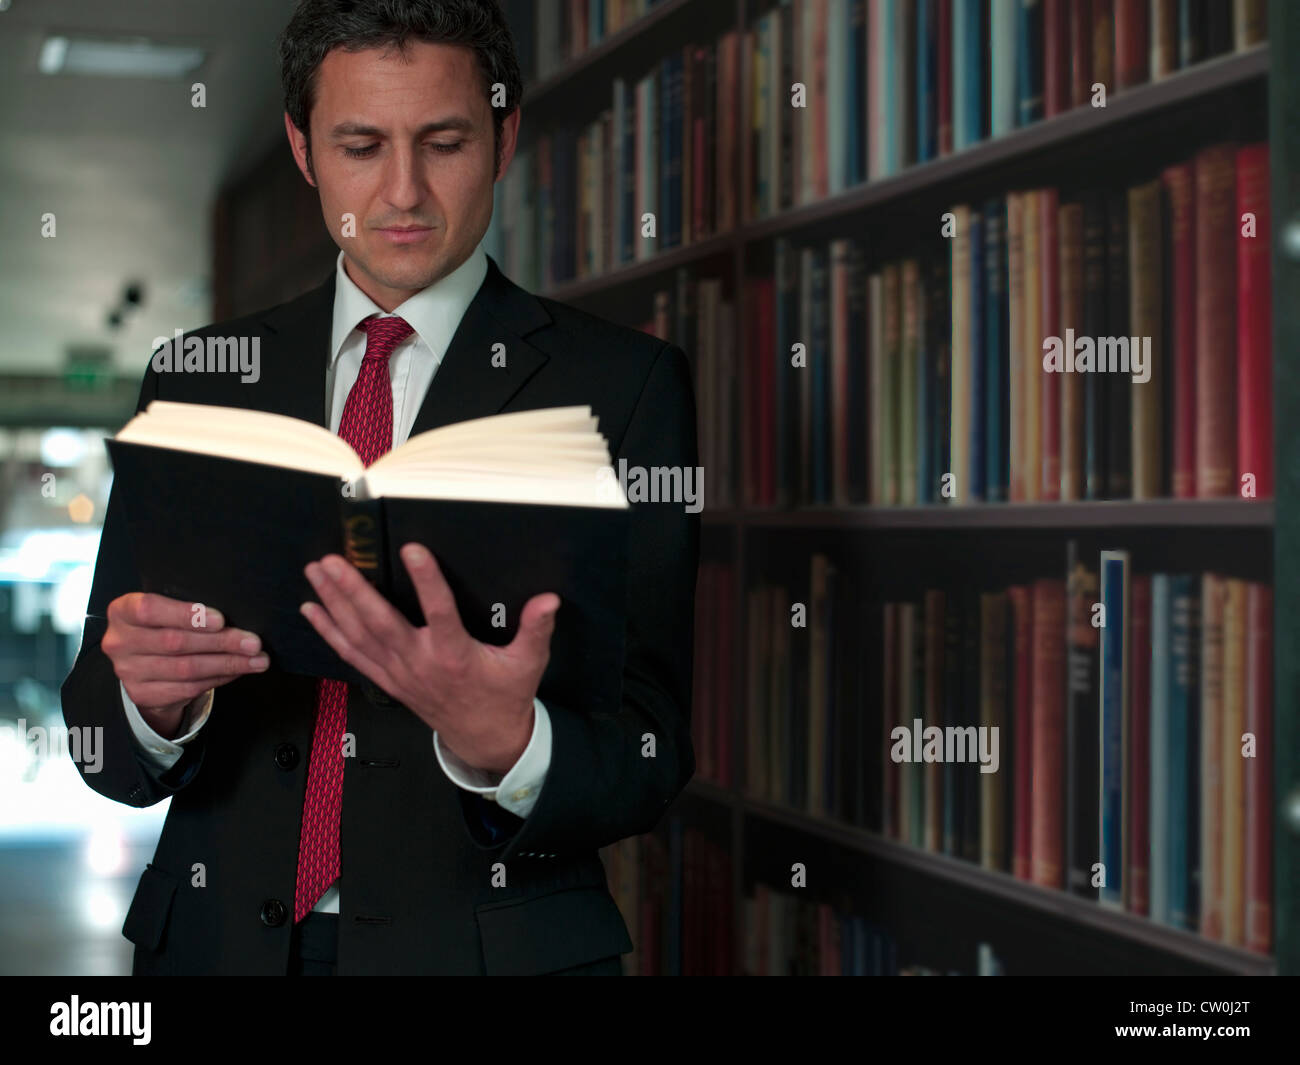 Businessman reading book in library - Stock Image